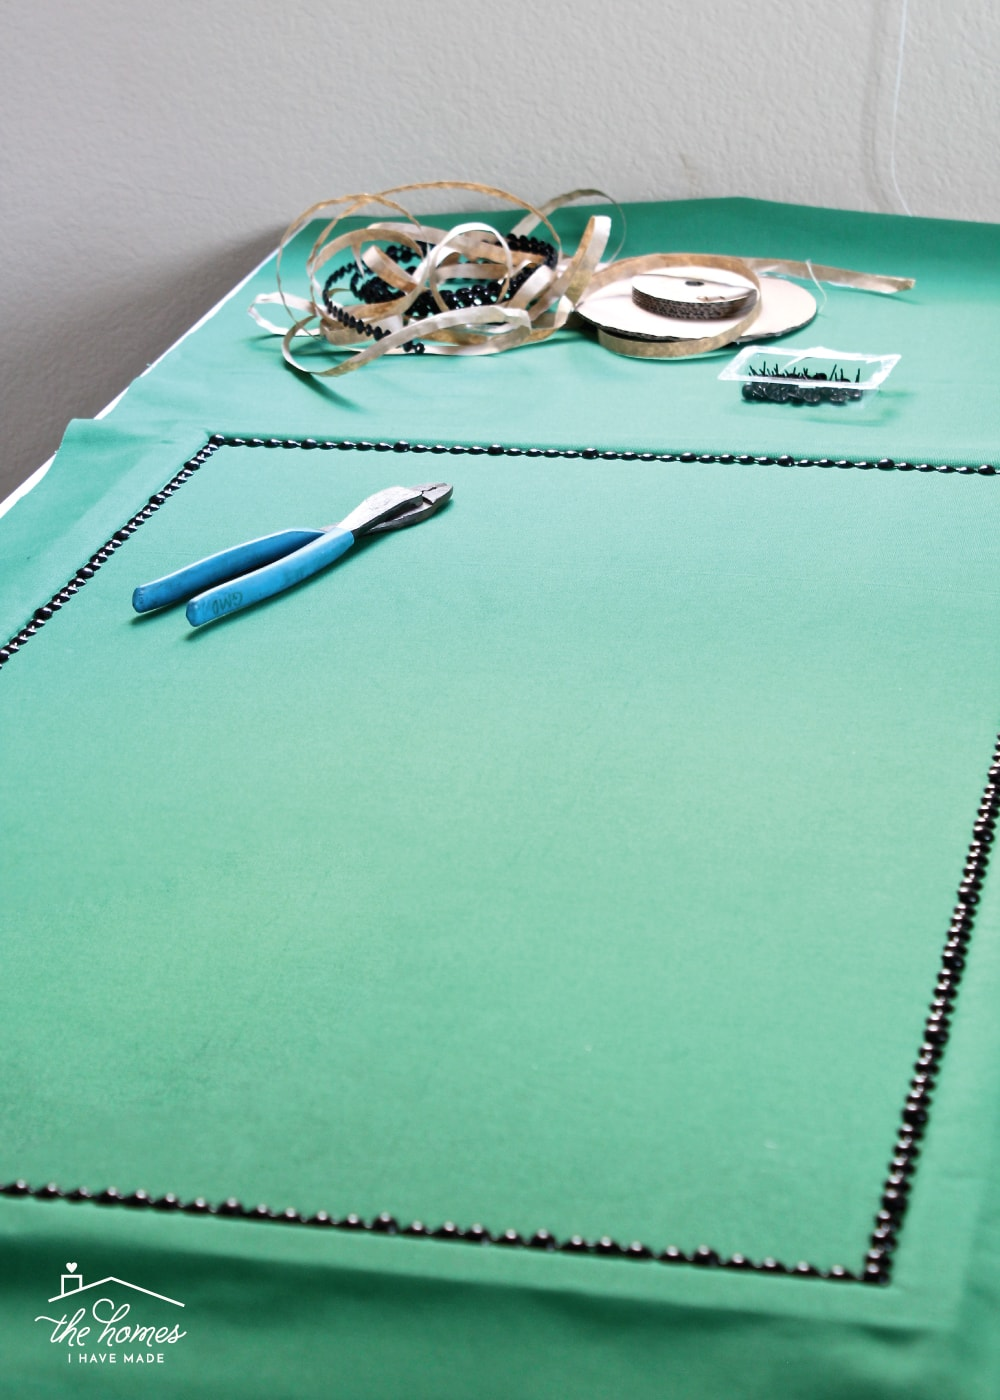 Give a basic bulletin board an easy, inexpensive and stylish upgrade with fabric and nailhead trim!